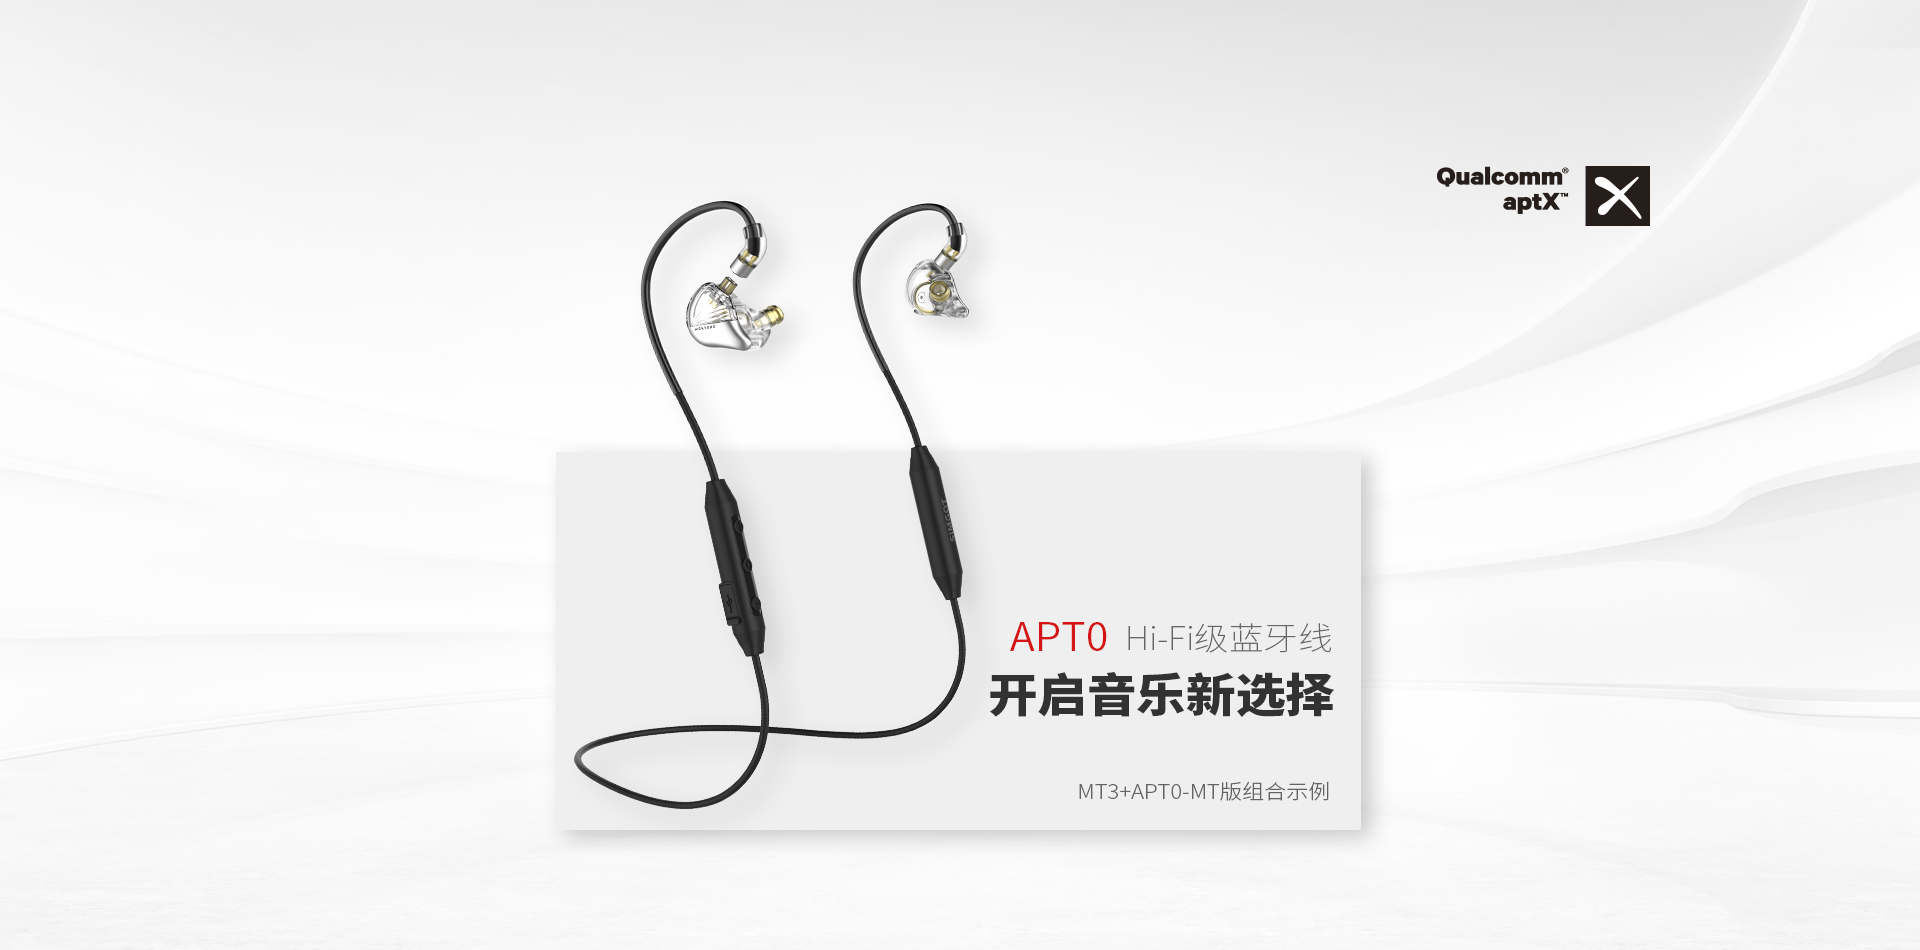 Simgot ATP0 adapter turns wired headphones into a Bluetooth